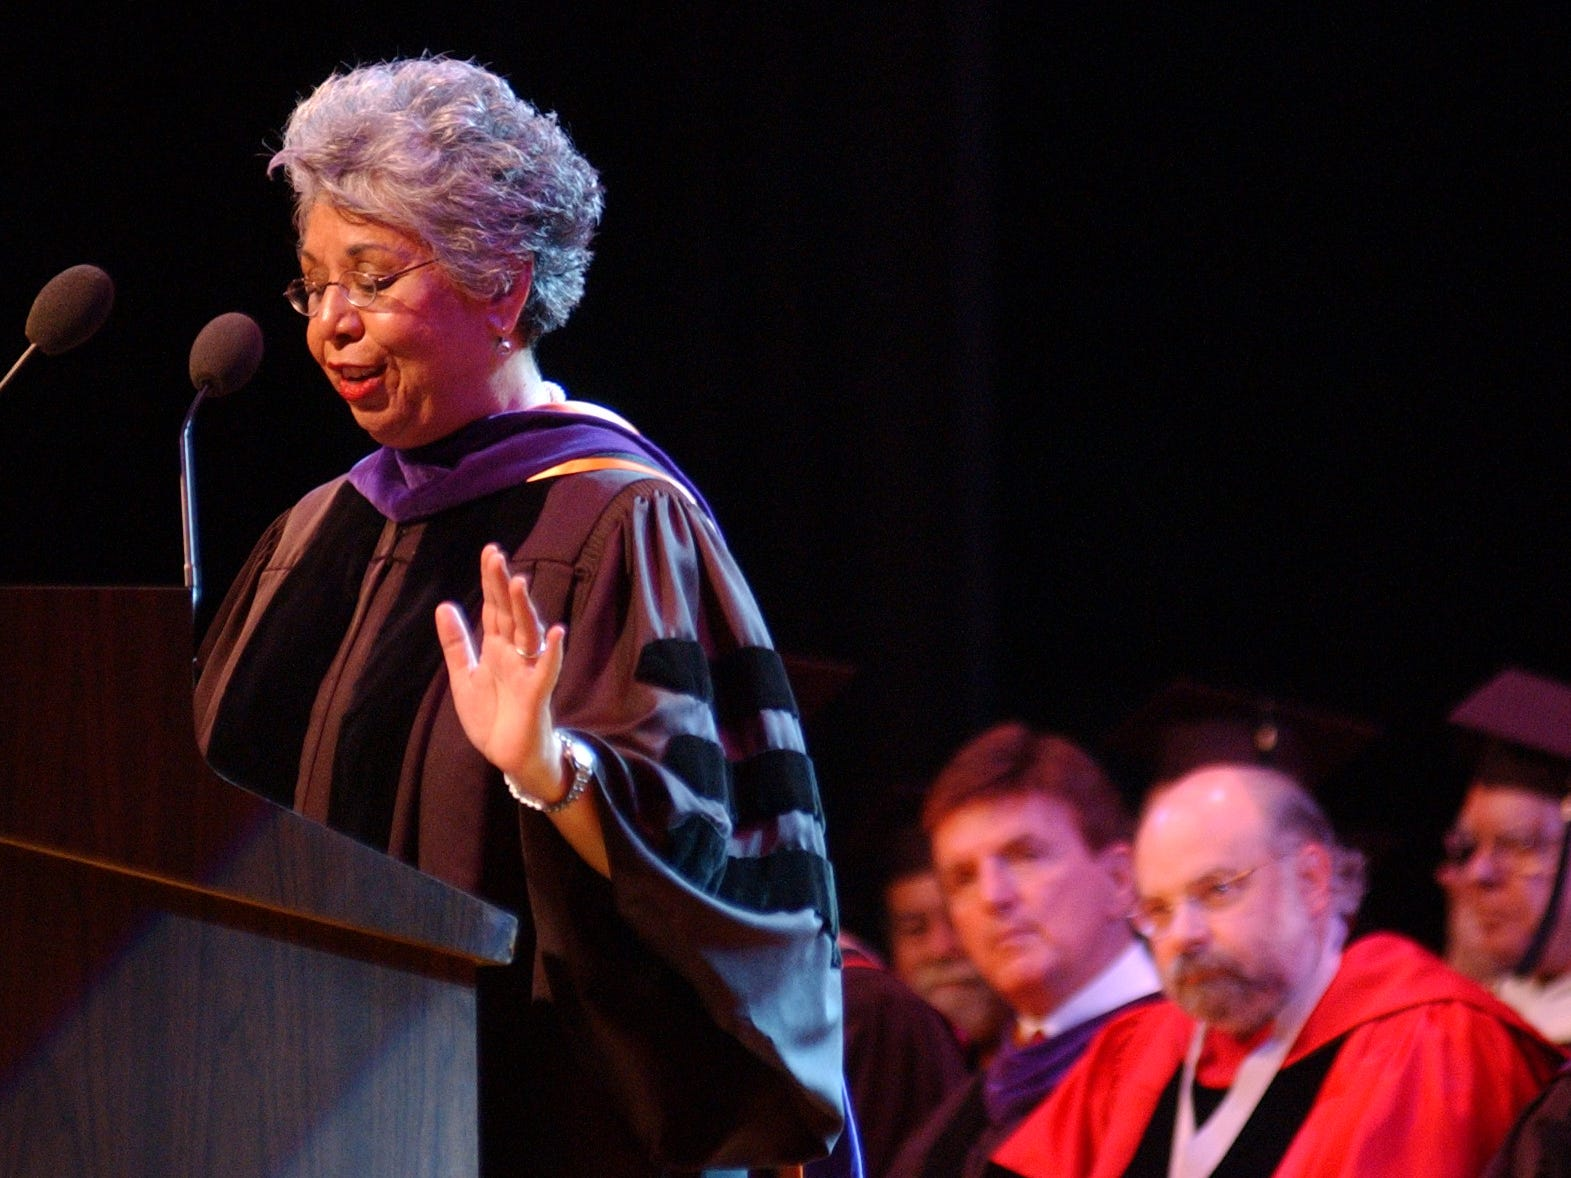 U.S. District Judge Hilda Tagle was the guest speaker for the Del Mar College Spring 2005 Commencement ceremonies. Tagle was the first woman to serve as a court-at-law judge in Nueces County. She was also the first Hispanic woman elected to a district judgeship in Nueces County.  Later, she was confirmed as a U.S. District Judge for the Southern District of Texas. She was the first Hispanic female judge from Texas appointed to a federal judgeship. She took senior status in 2012 but continues to work and issue rulings.